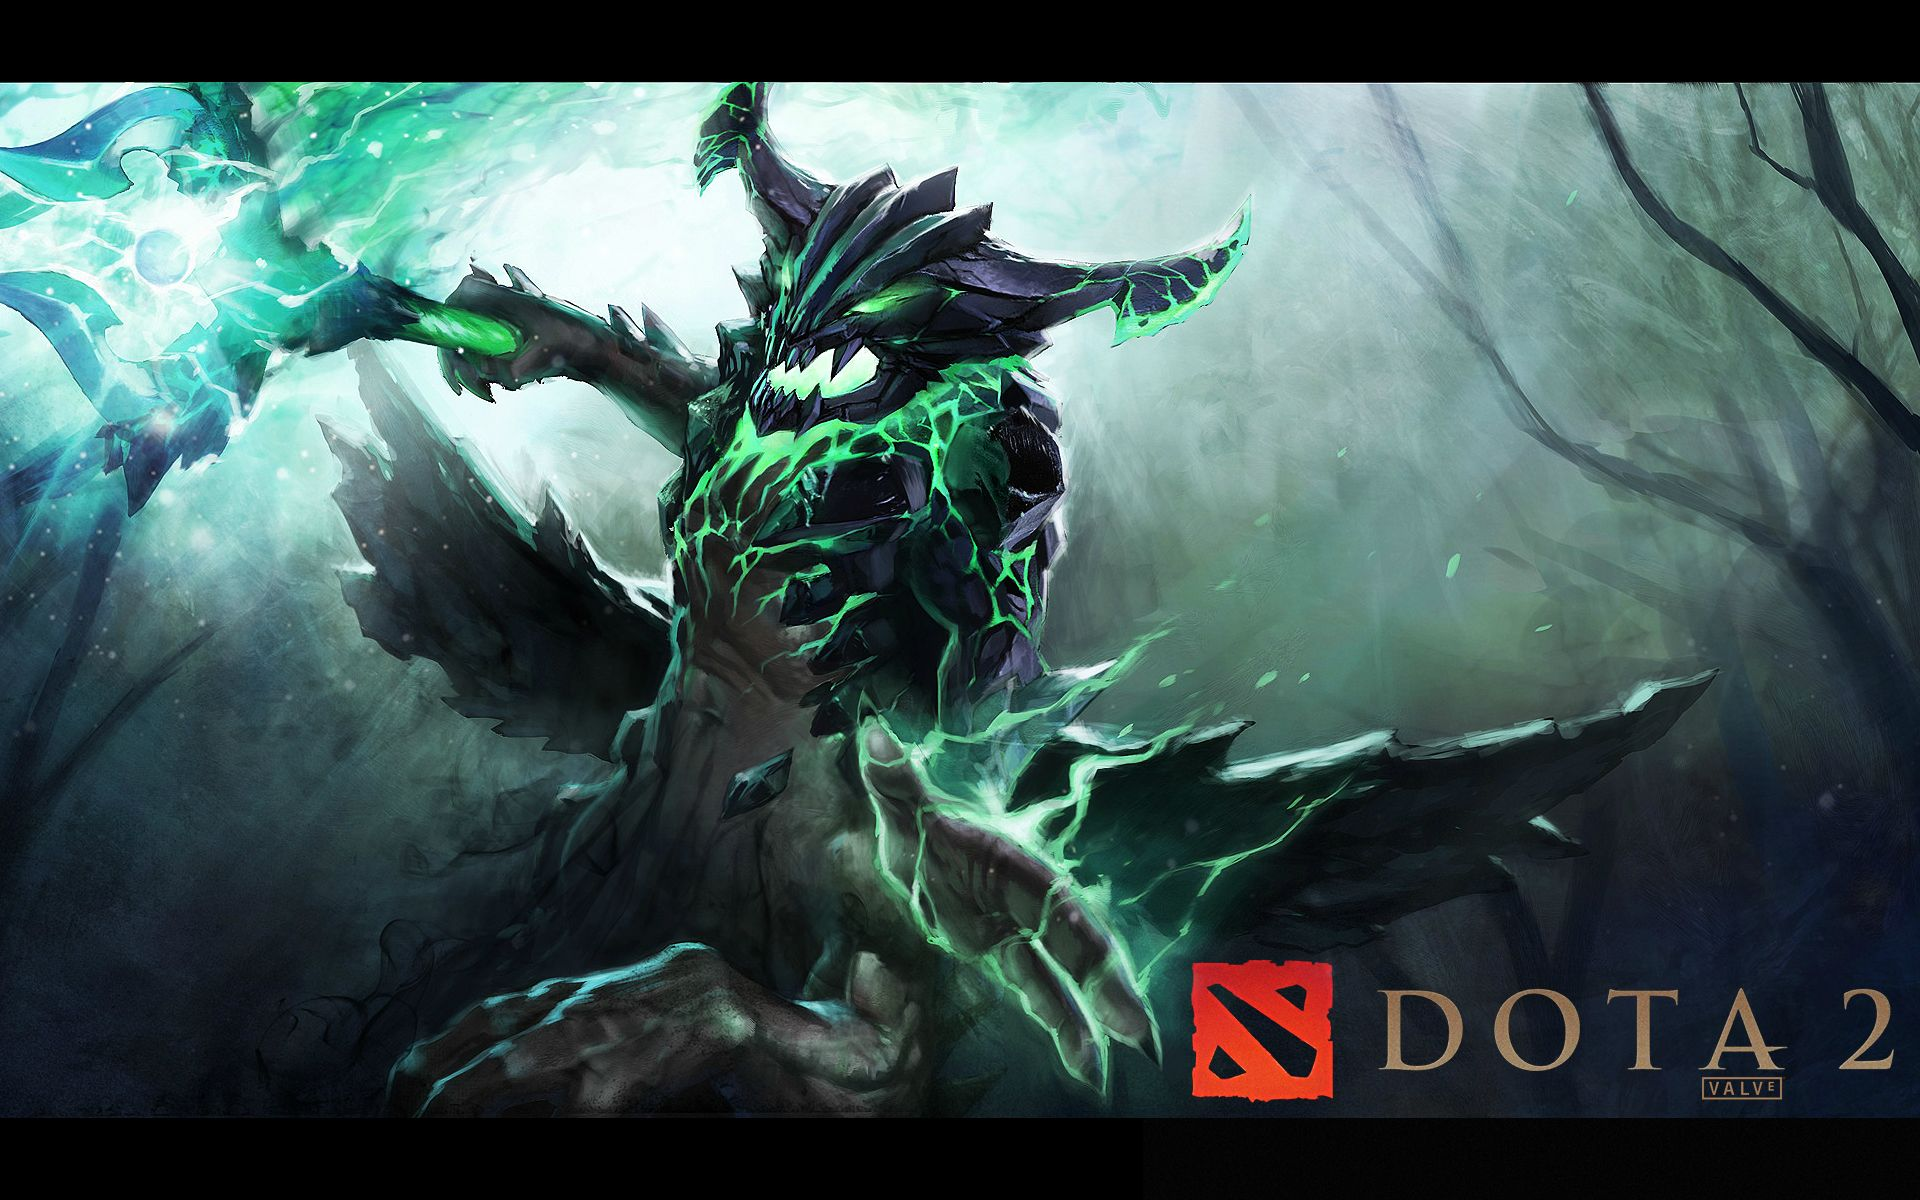 Dota 2 hd wallpaper background image 1920x1200 id 382215 wallpaper abyss - Games hd wallpapers 1920x1200 ...